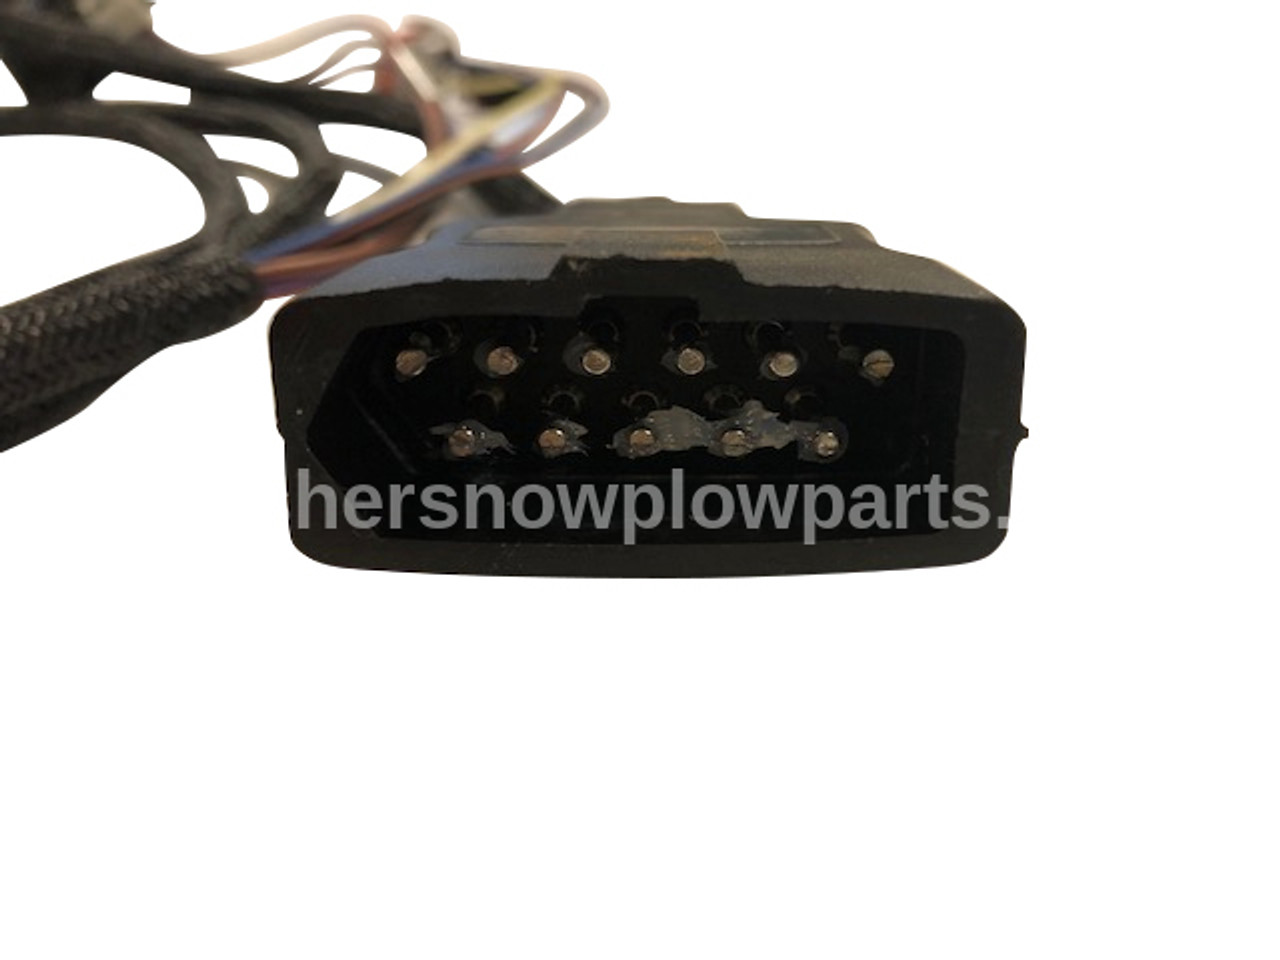 38807  - FISHER SNOW PLOWS GENUINE REPLACEMENT PART - DUAL HALOGEN INTENSIFIRE HARNESS KIT PLOW LIGHTS H9/H11